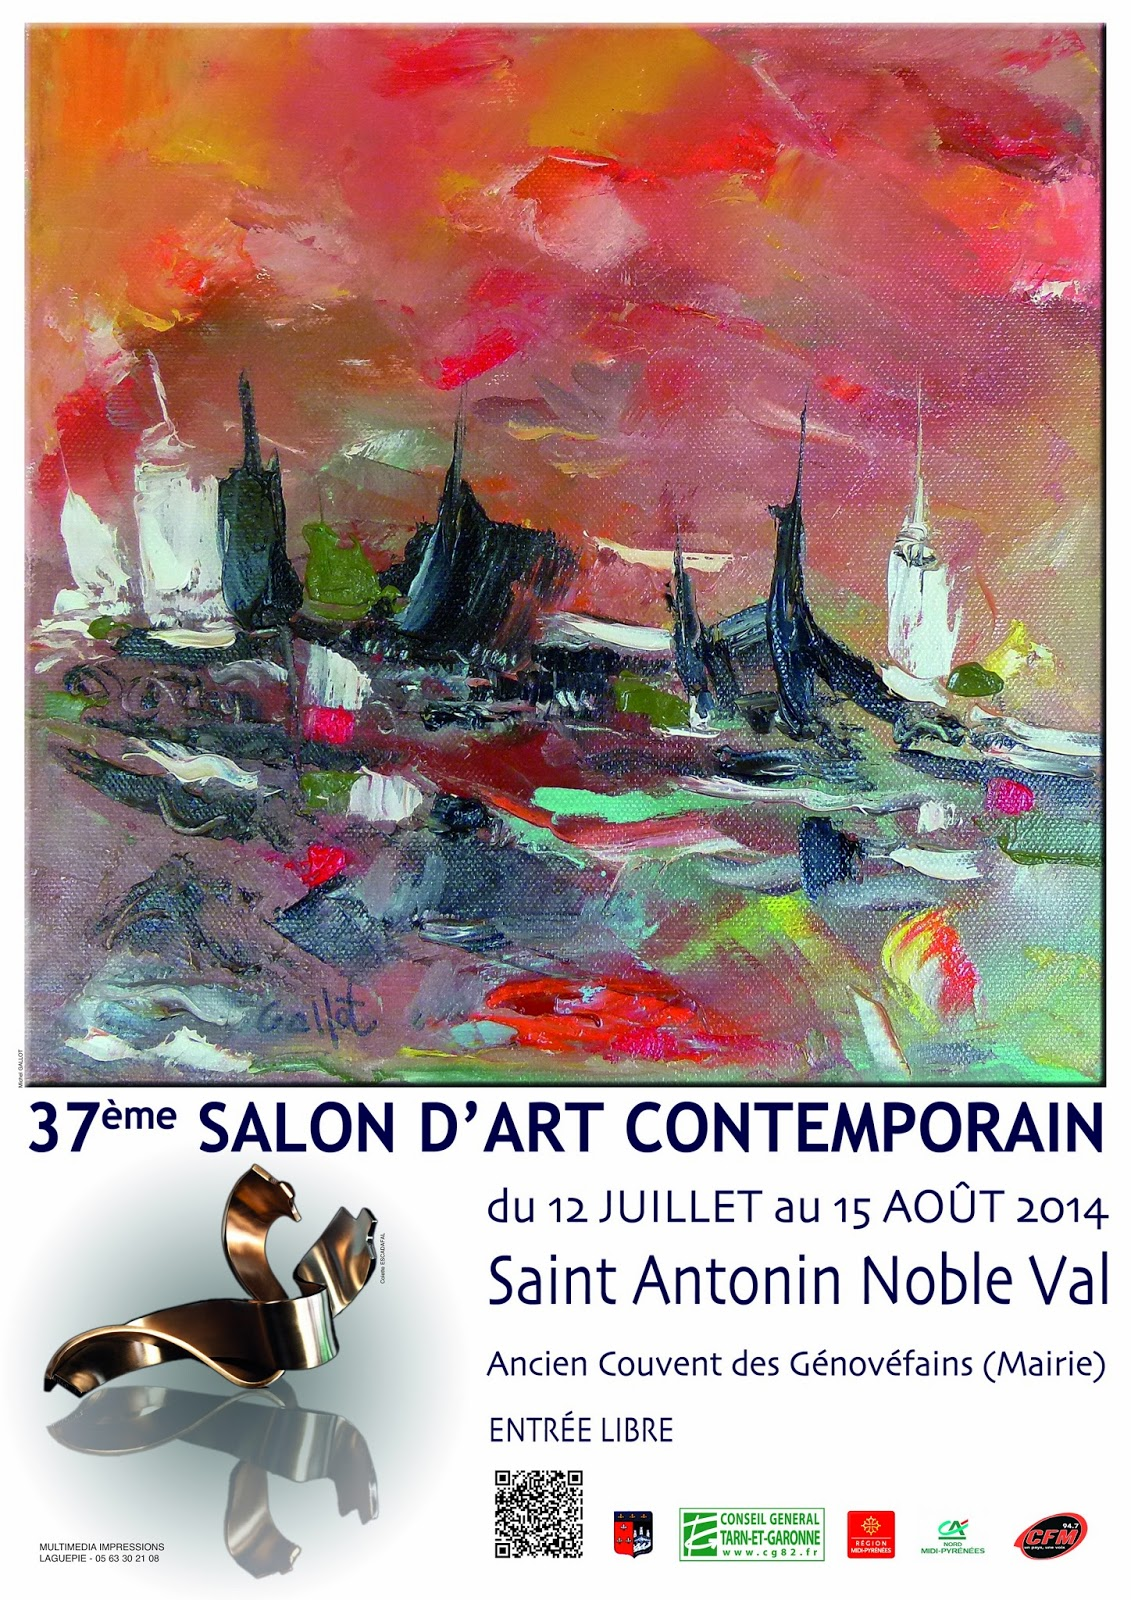 Th s e couleur art contemporain - Salon art contemporain ...